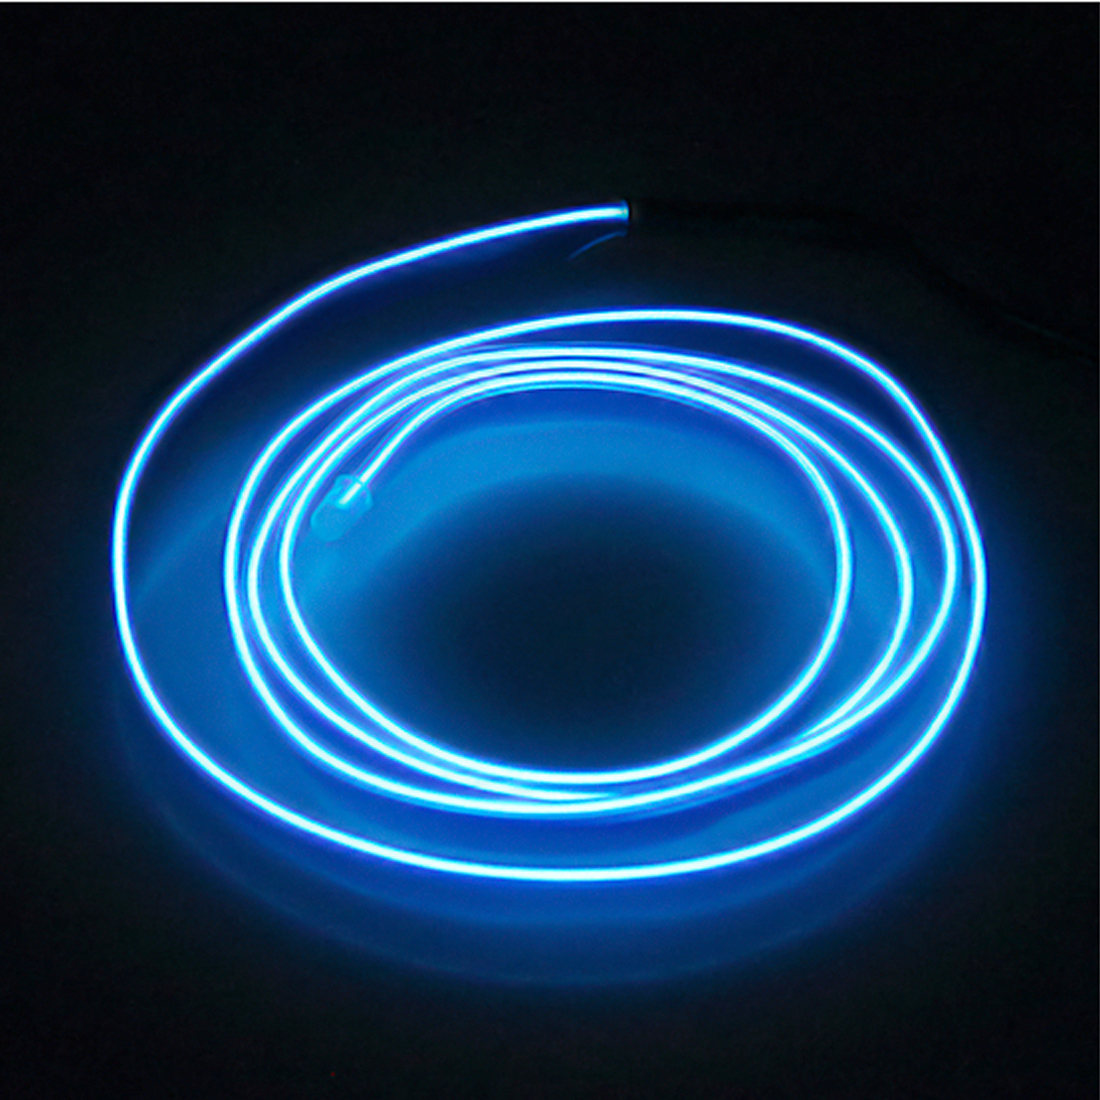 Dewtreetali 1m 2m 3m 5m 9mm Car decor lighter LED Lamp Strip thread sticker decals tags Flexible Neon Light EL Wire Rope jurus hot sale led 1m 2m 3meters 5m neon light car decor lamp flexible el wire rope tube waterproof strip with 12v inverter